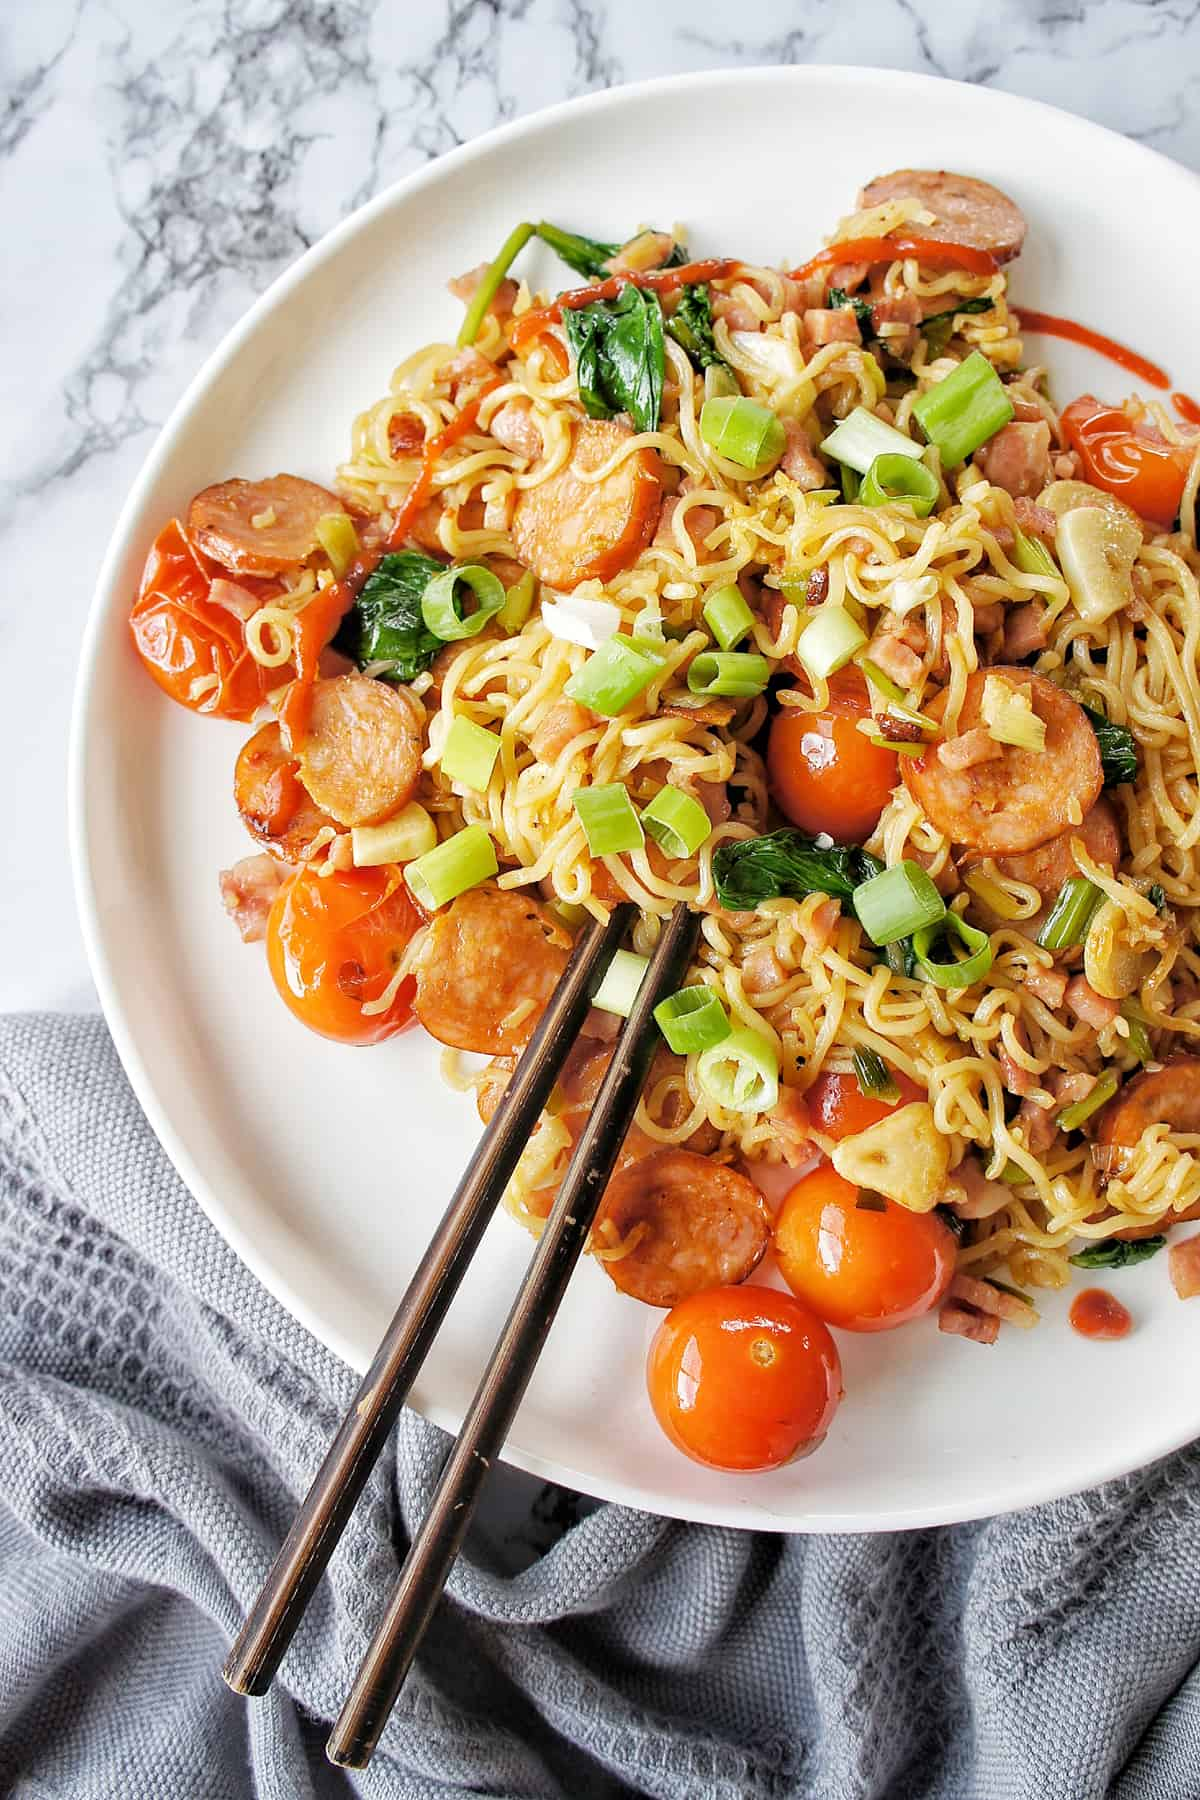 Chorizo Noodles on a white plate with wooden chopsticks